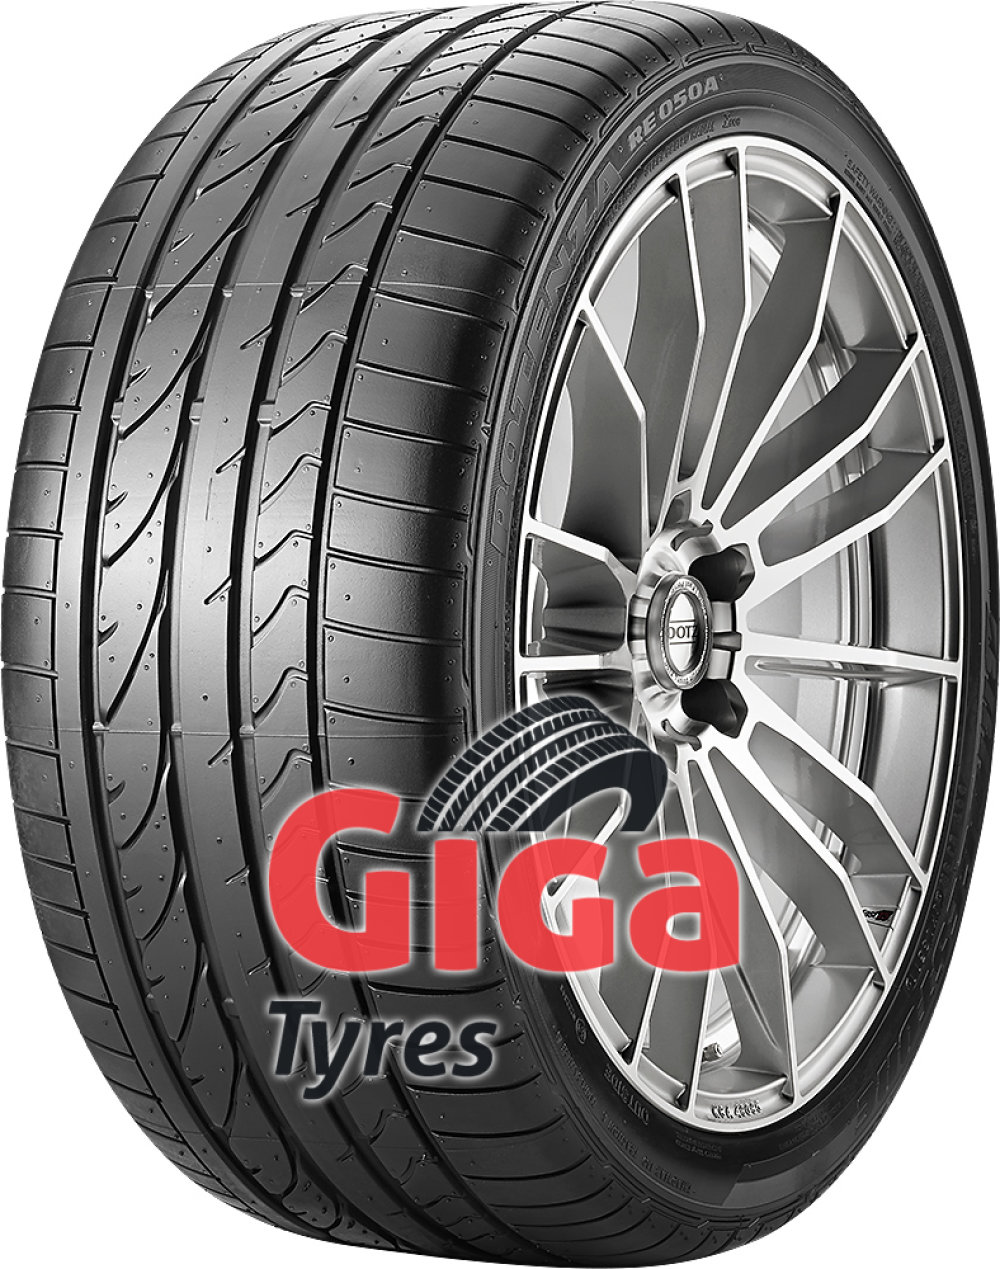 Bridgestone Potenza RE 050 A RFT ( 225/45 R17 91V *, with rim protection (MFS), runflat )